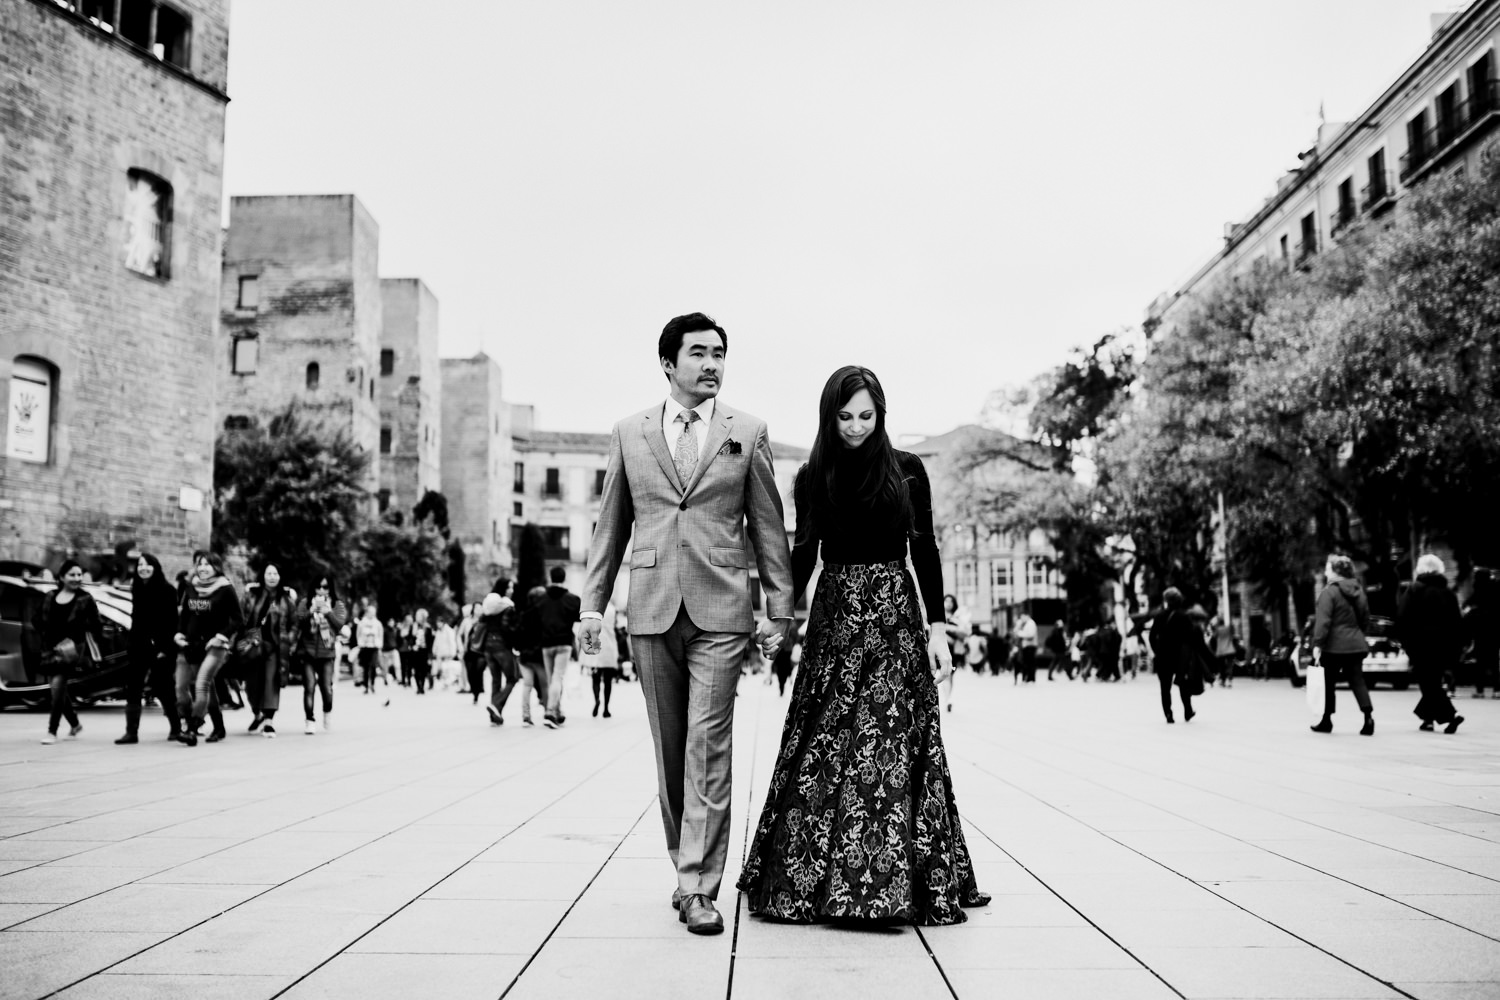 barcelona-wedding-photographer004.jpg